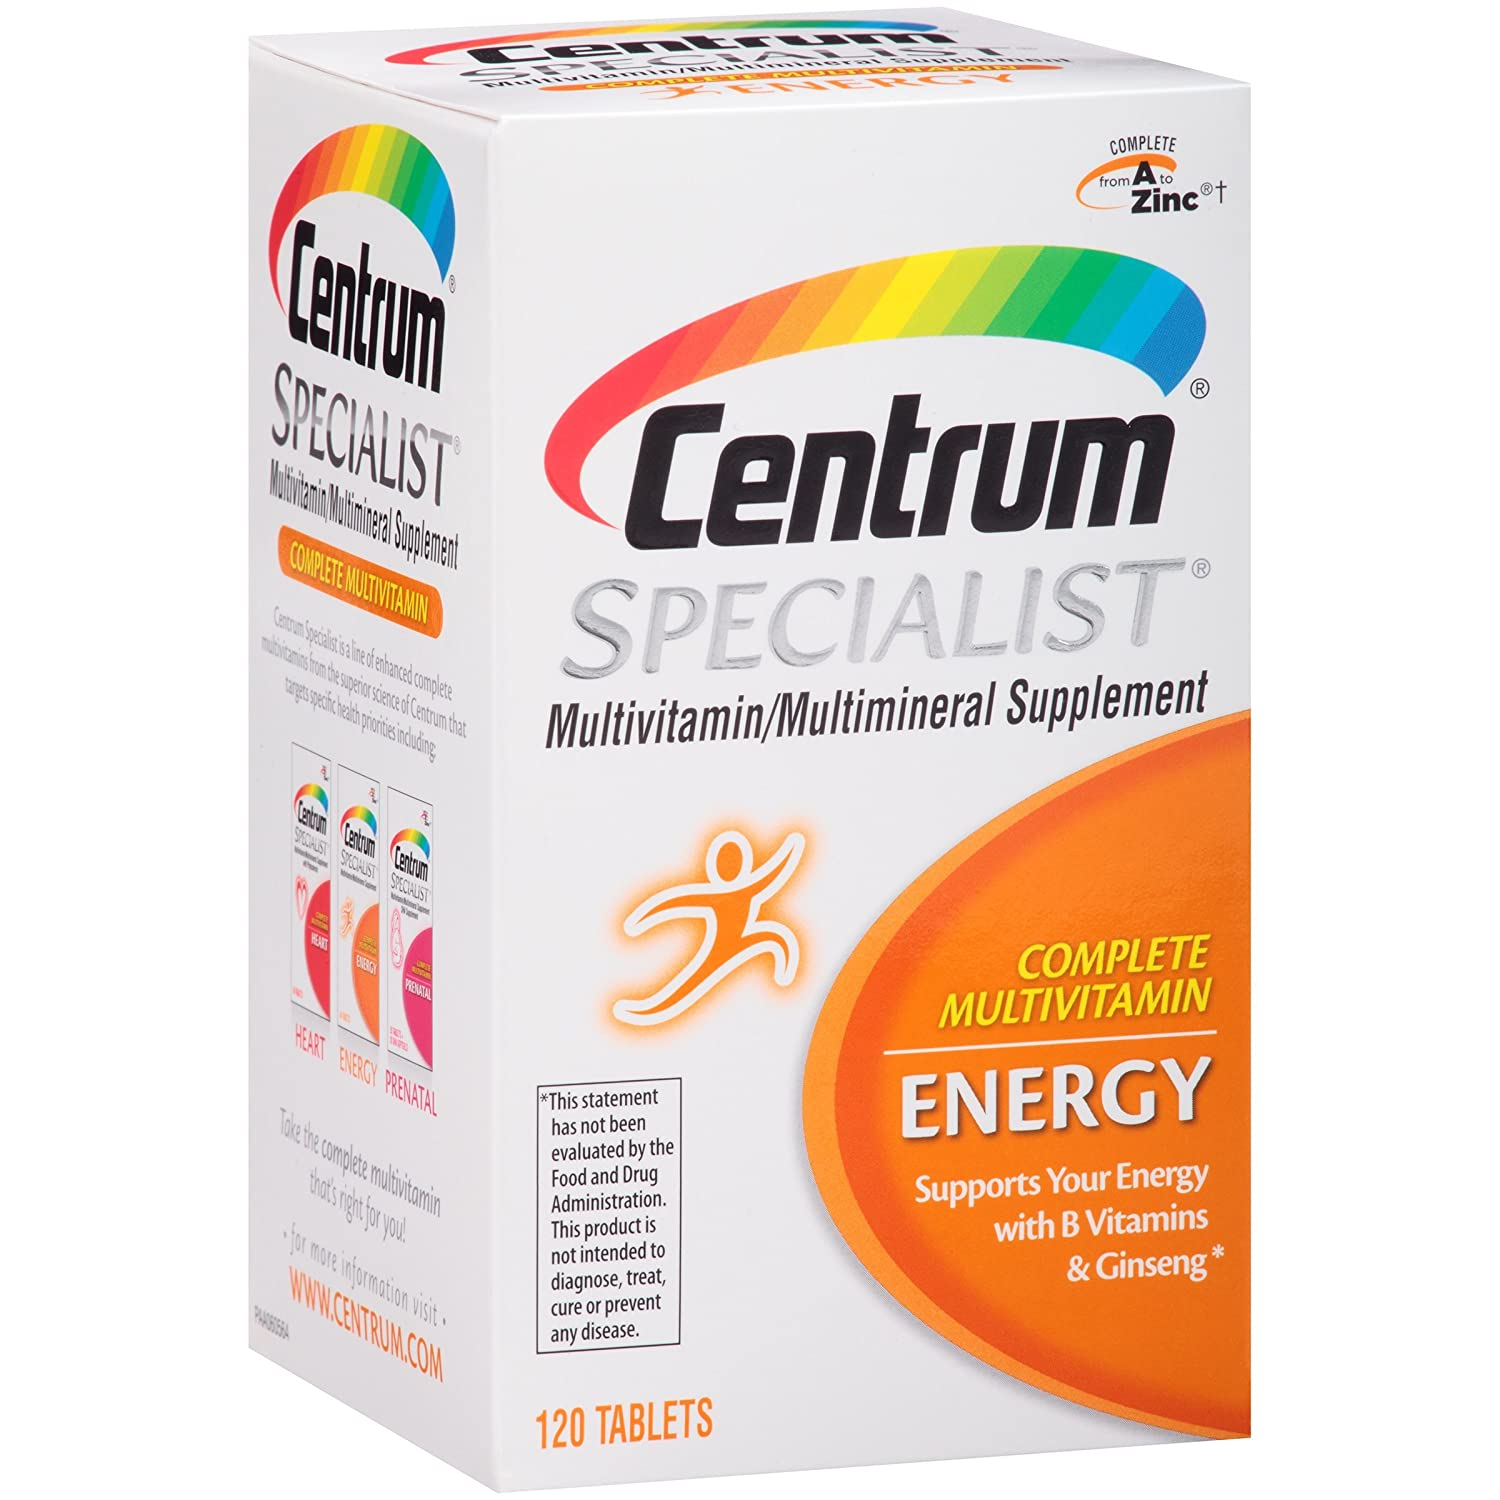 Centrum Specialist Energy 120 Count Complete Multivitamin Multimineral Supplement Tablet, Vitamin D3 and Vitamin C